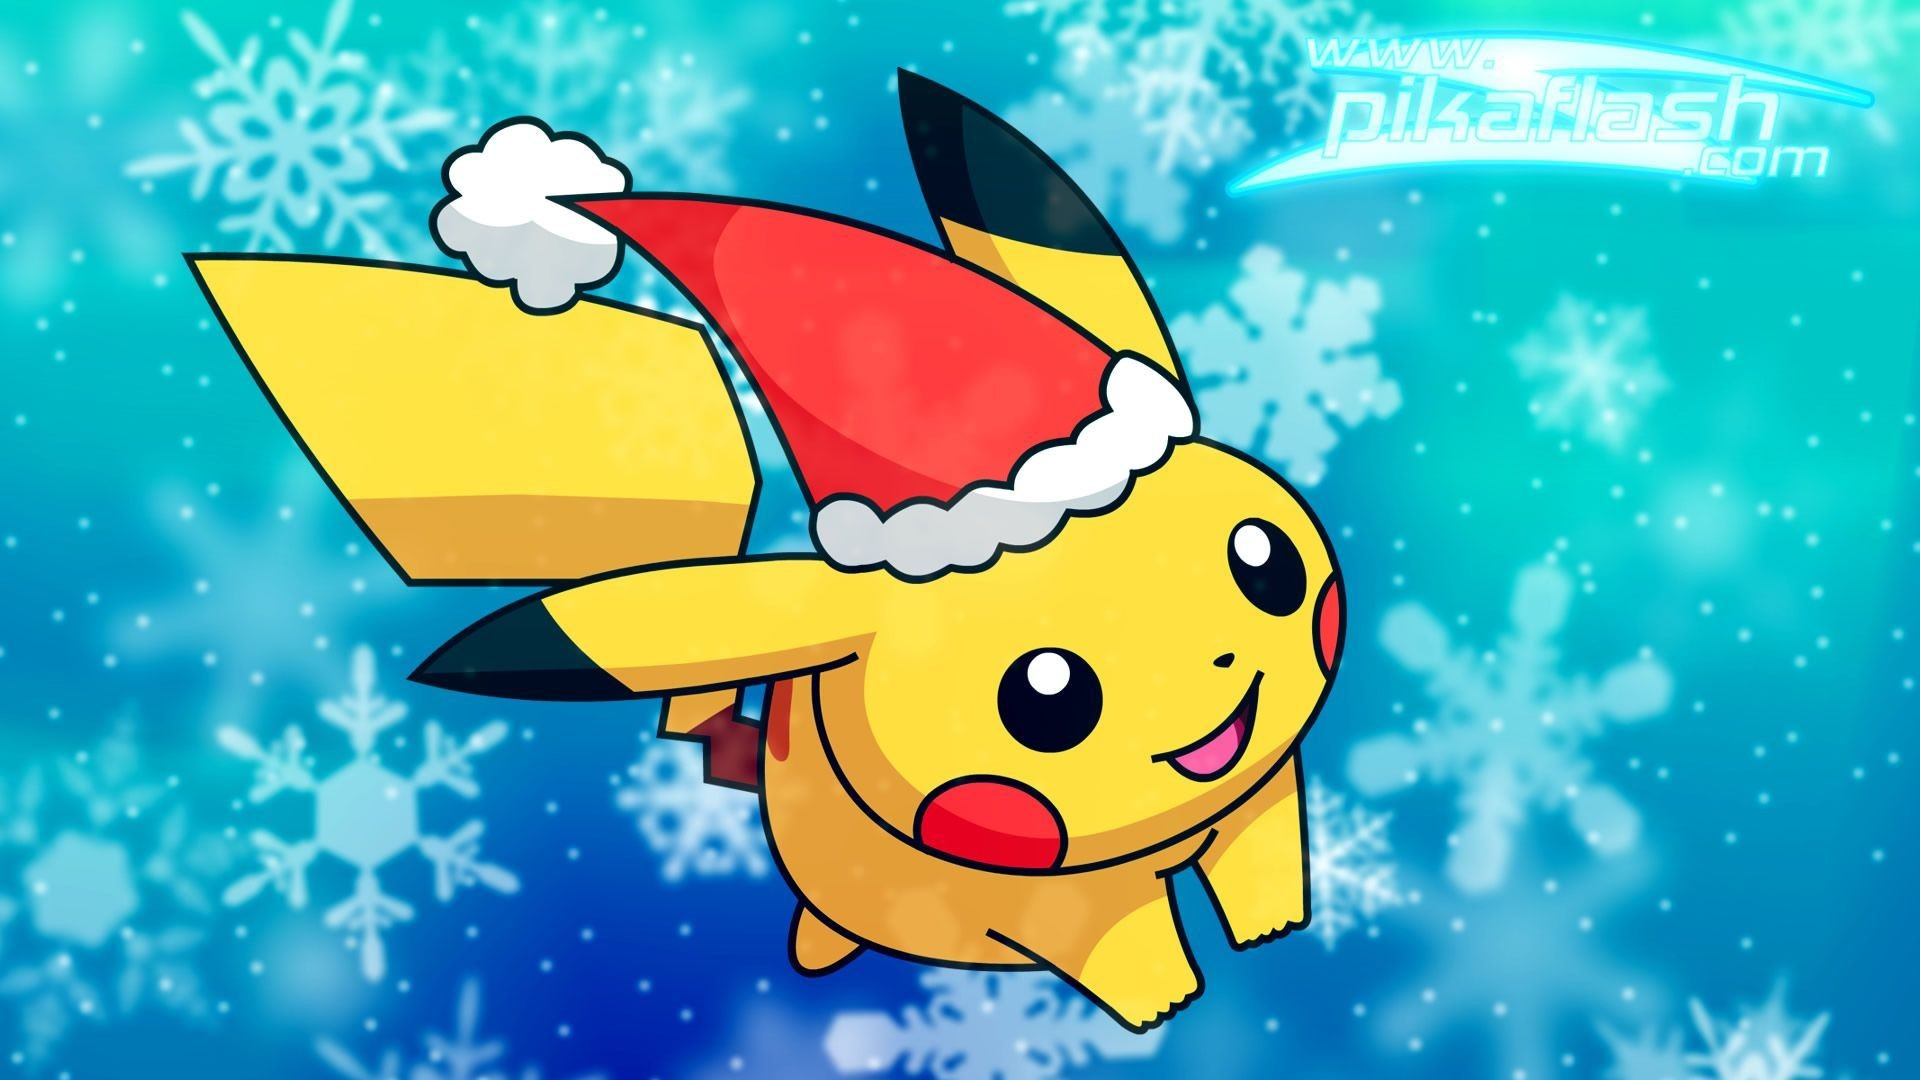 1920x1080 Pikachu Christmas HD Wallpaper Pokemon Christmas HD Images